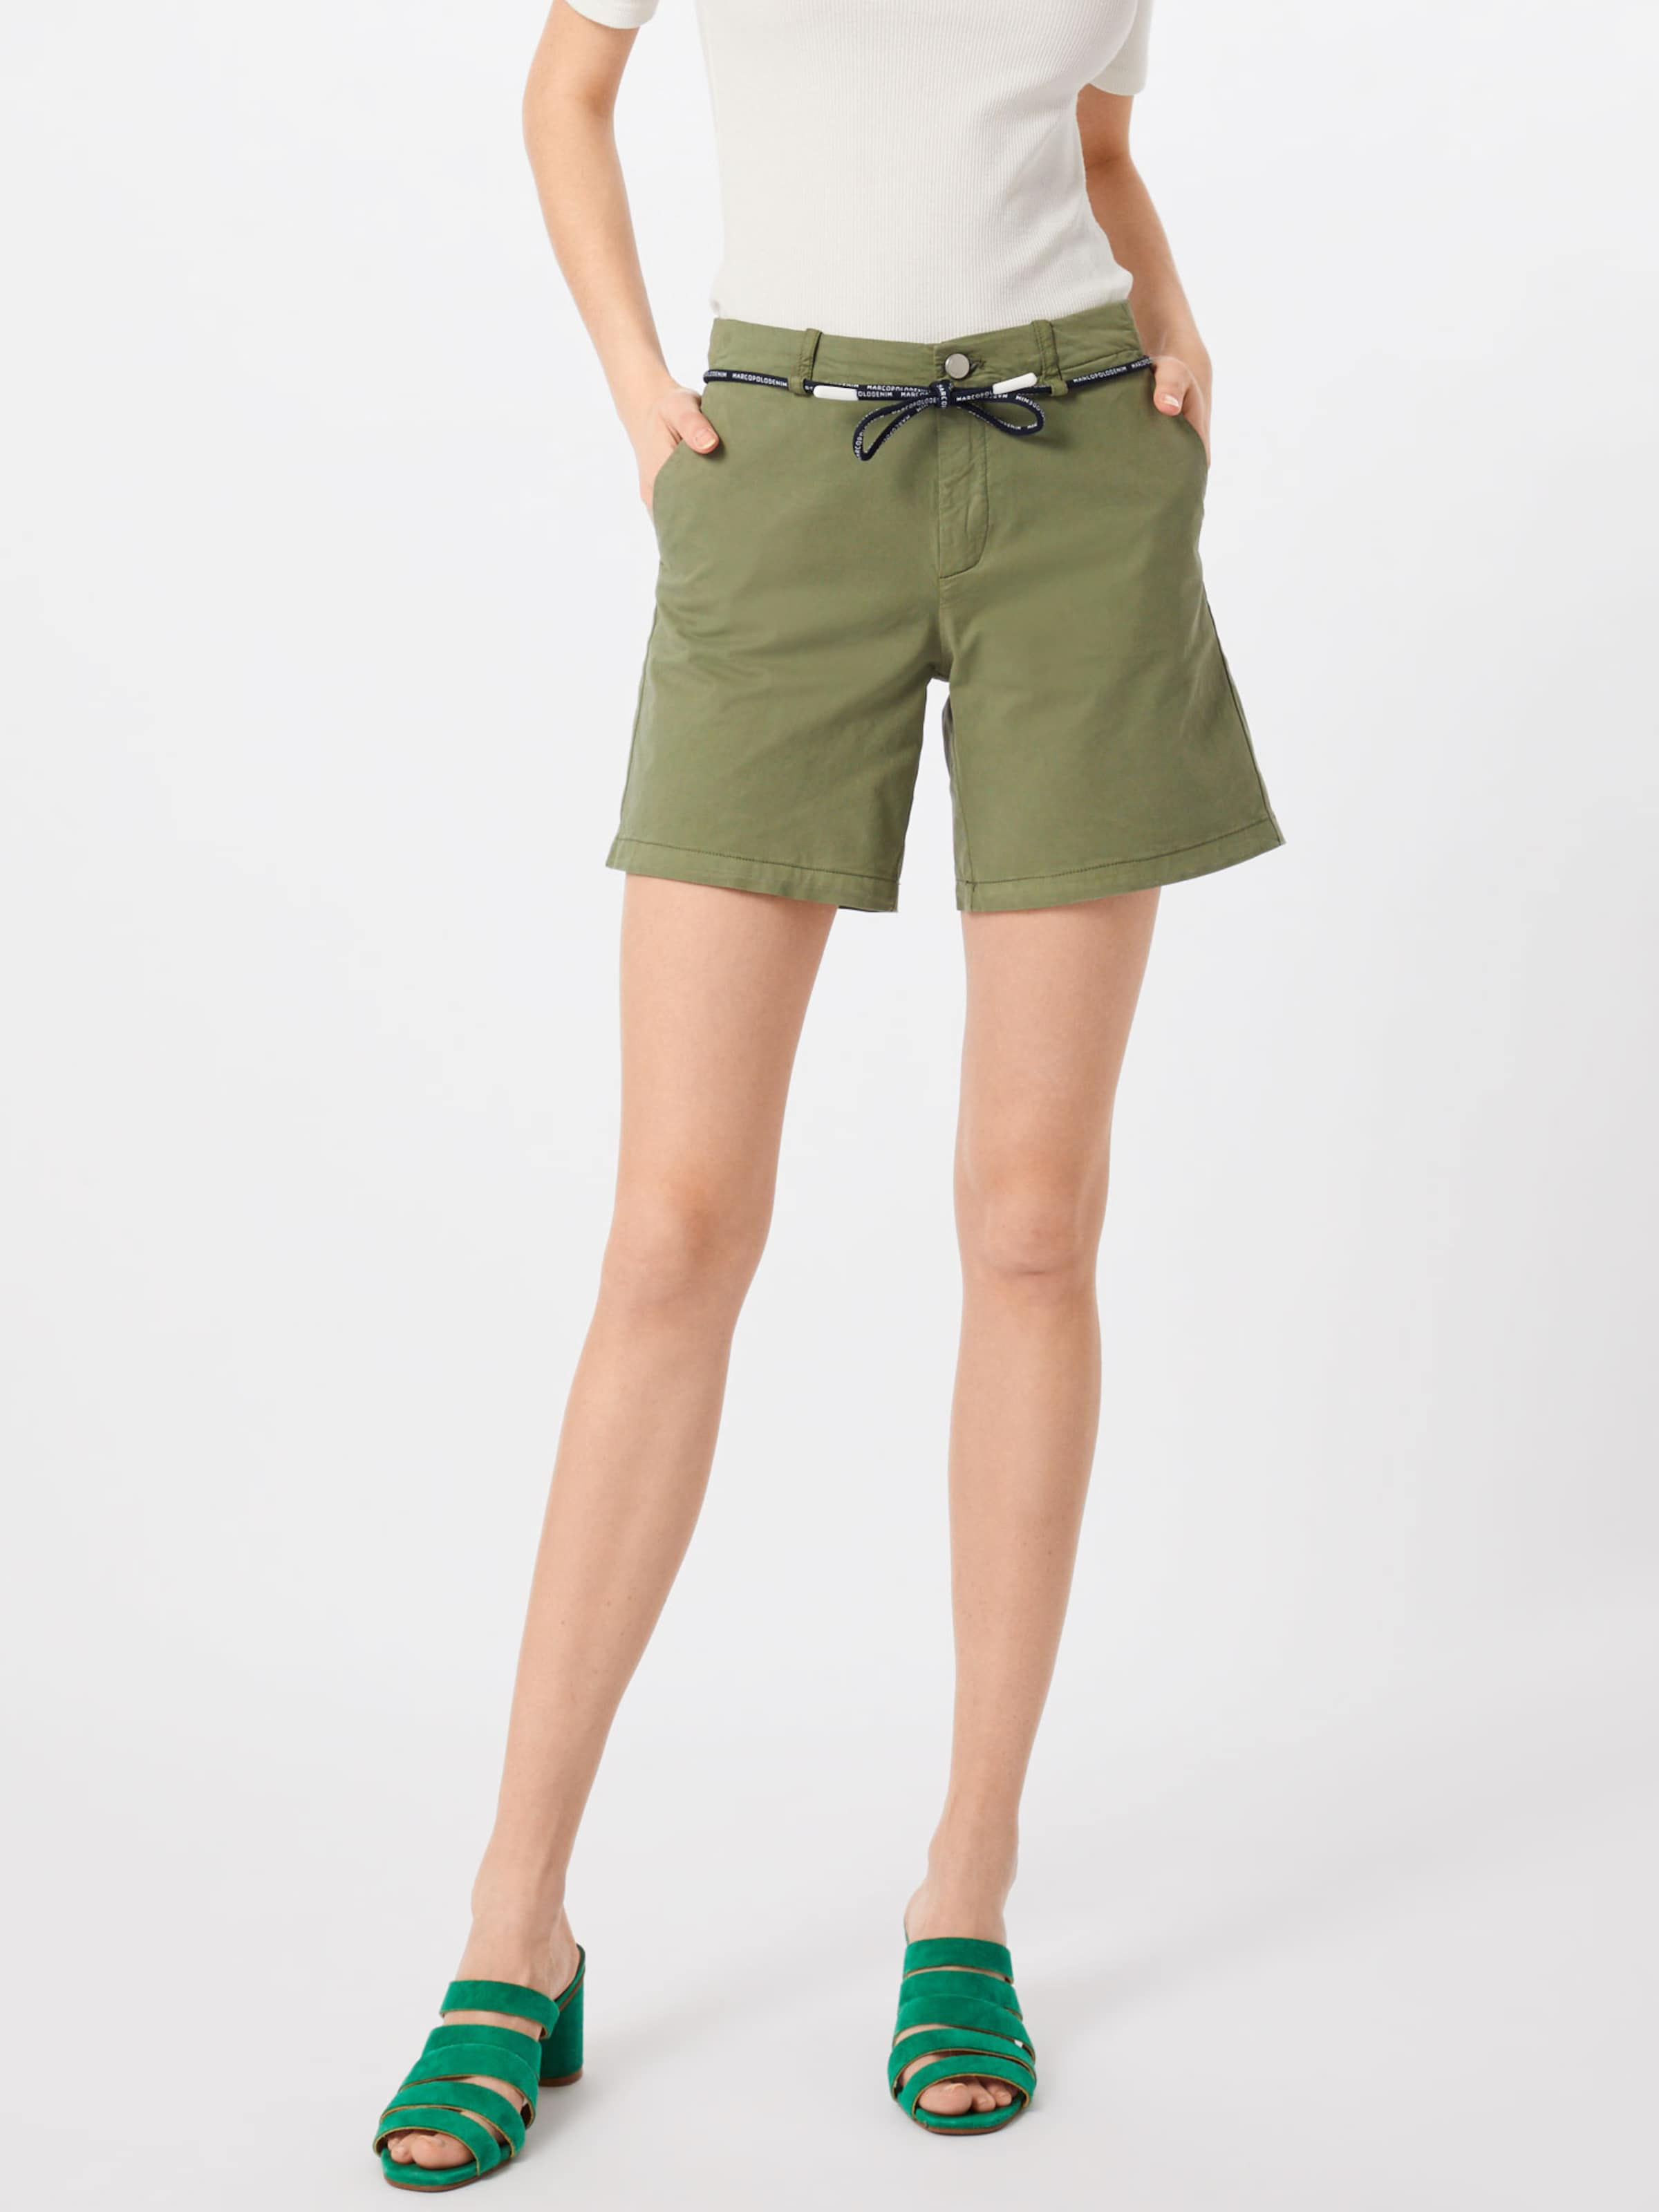 En Pantalon Denim Marc O'polo Chino Olive NP8nwO0kX